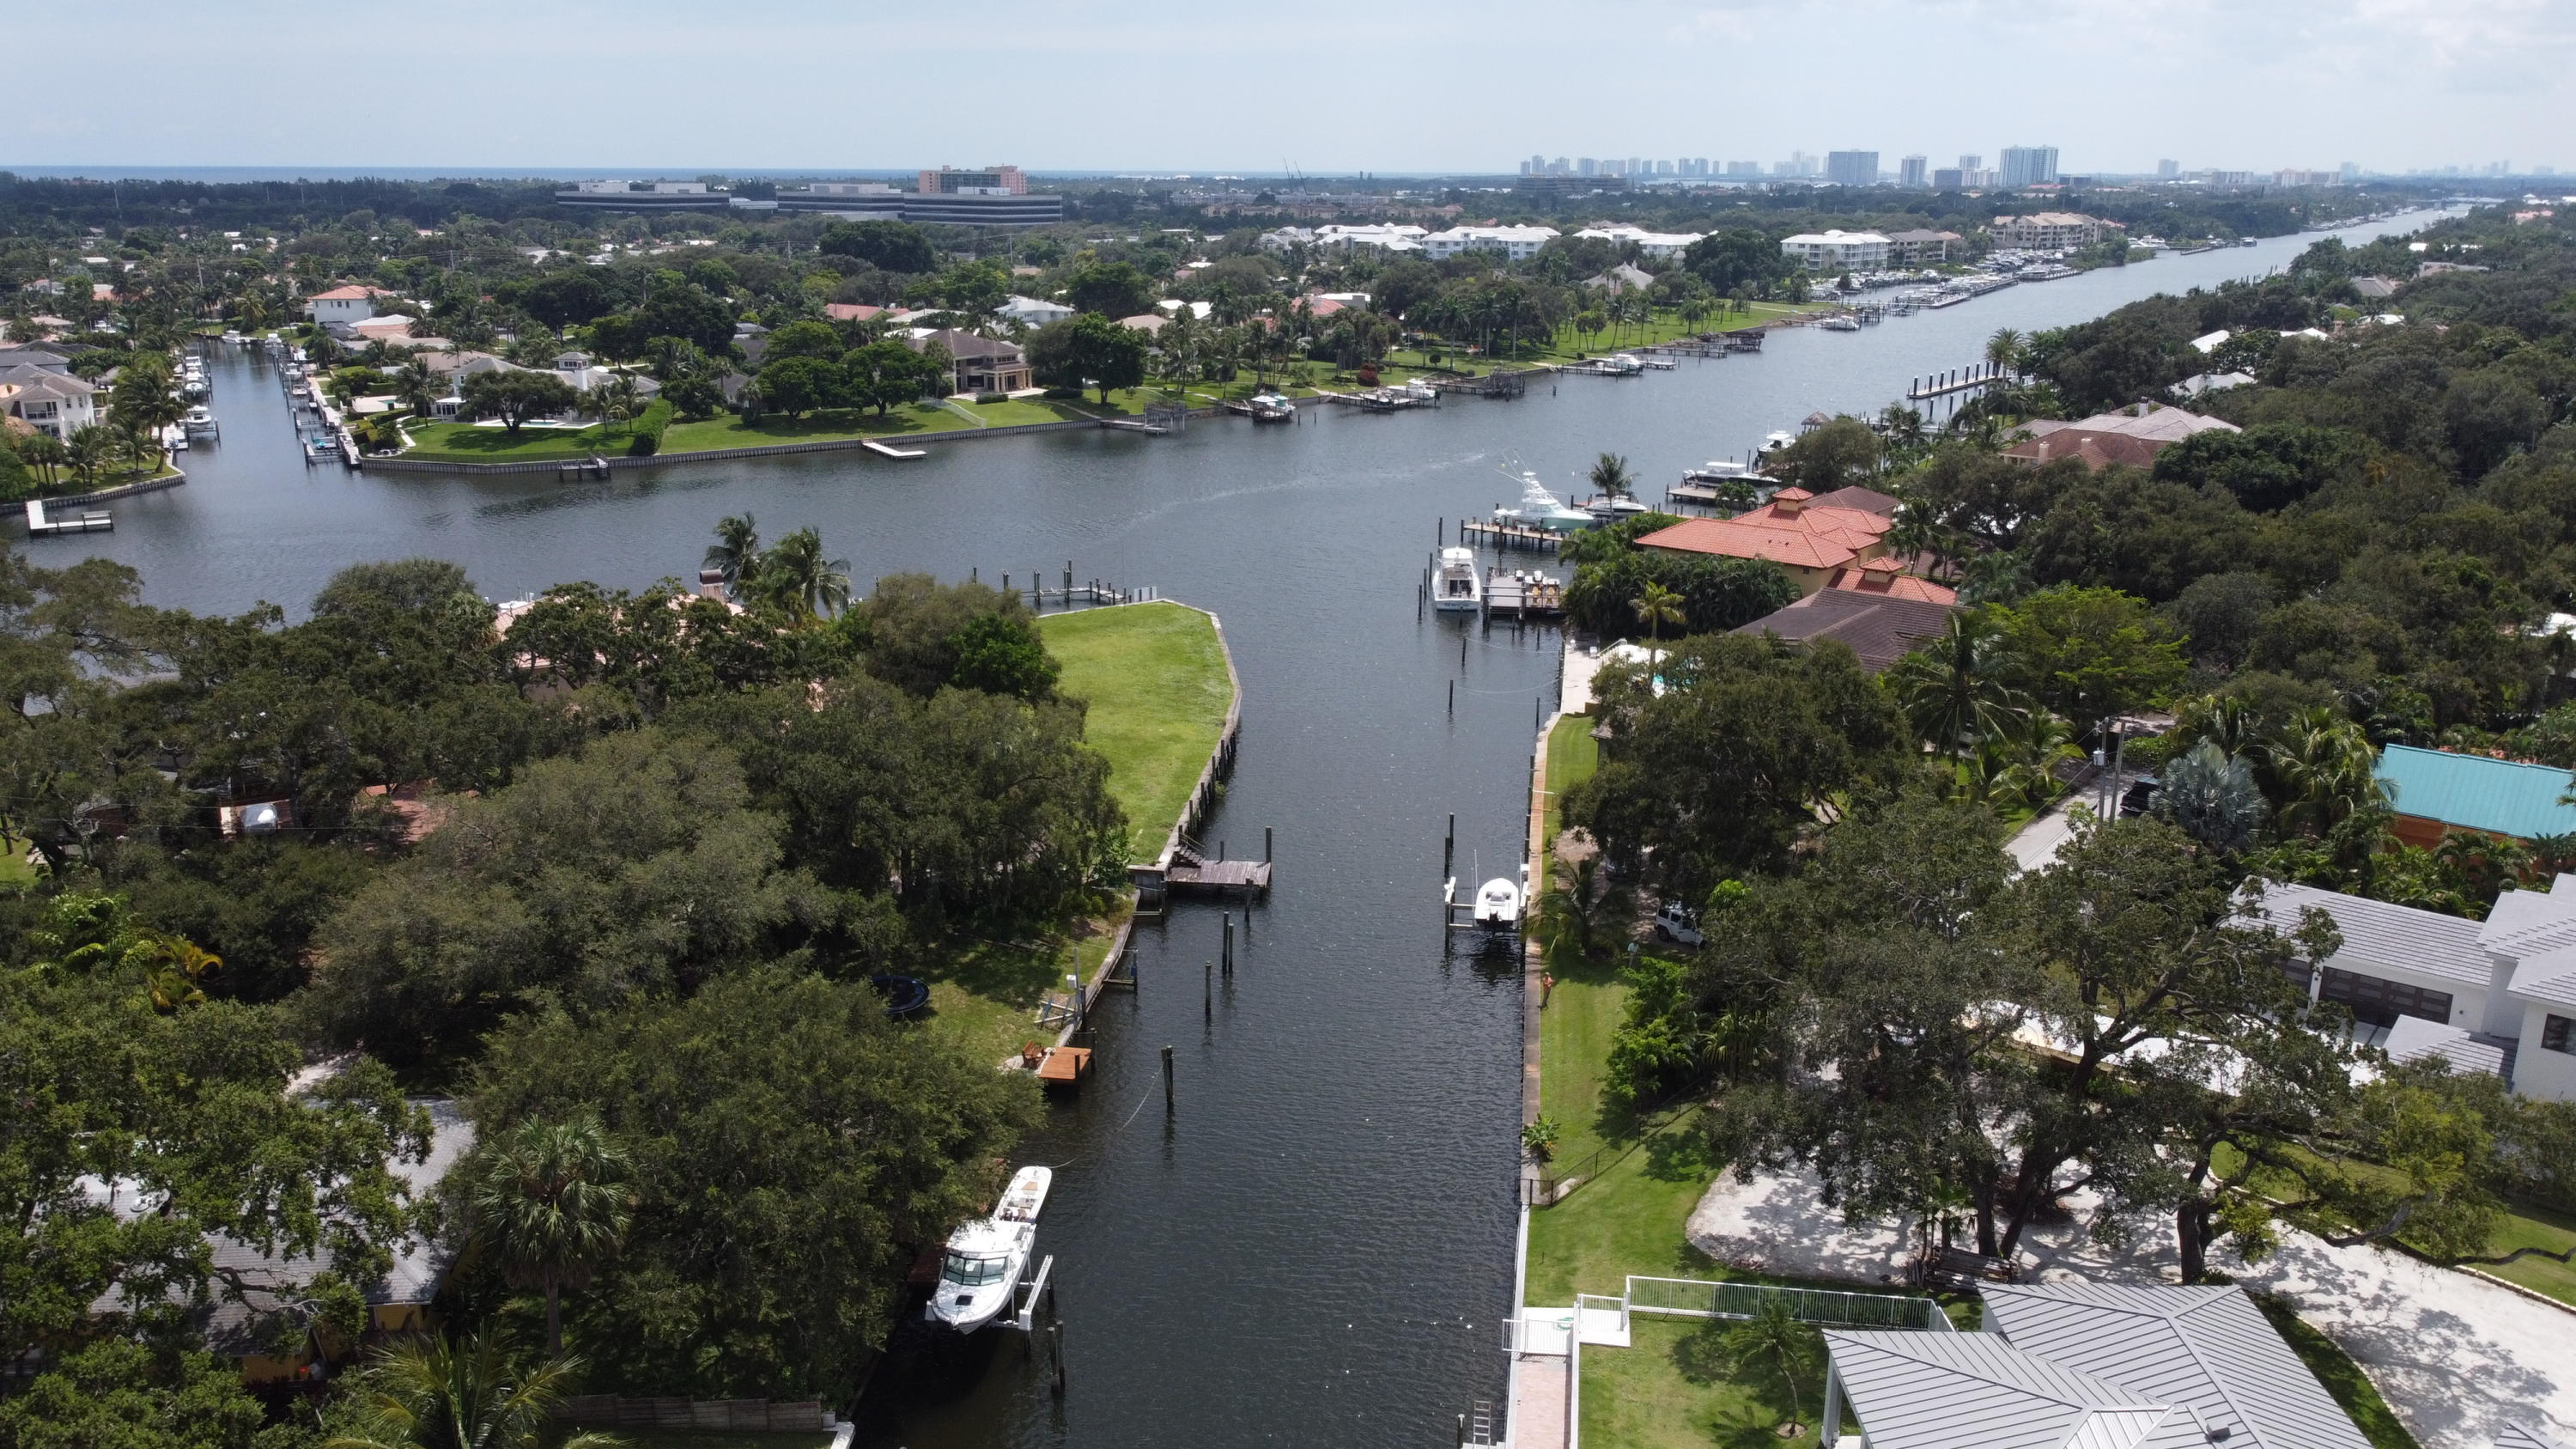 Canal adjacent to ICW